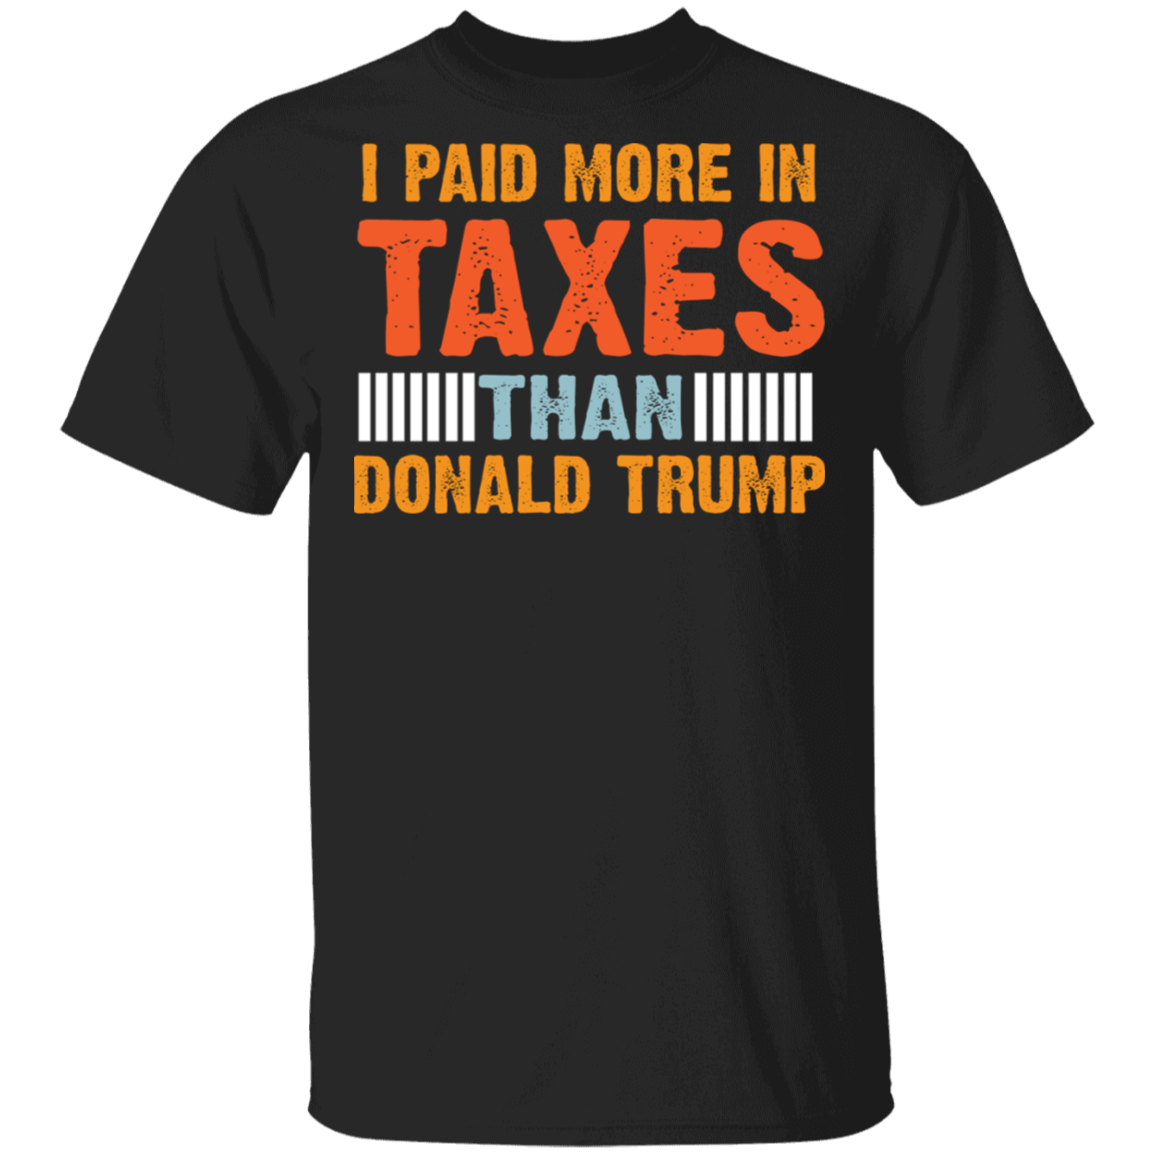 I Pay More In Taxes Than Donald Trump Vintage Shirt Joe Biden Campaign Merchandise Anti Trump